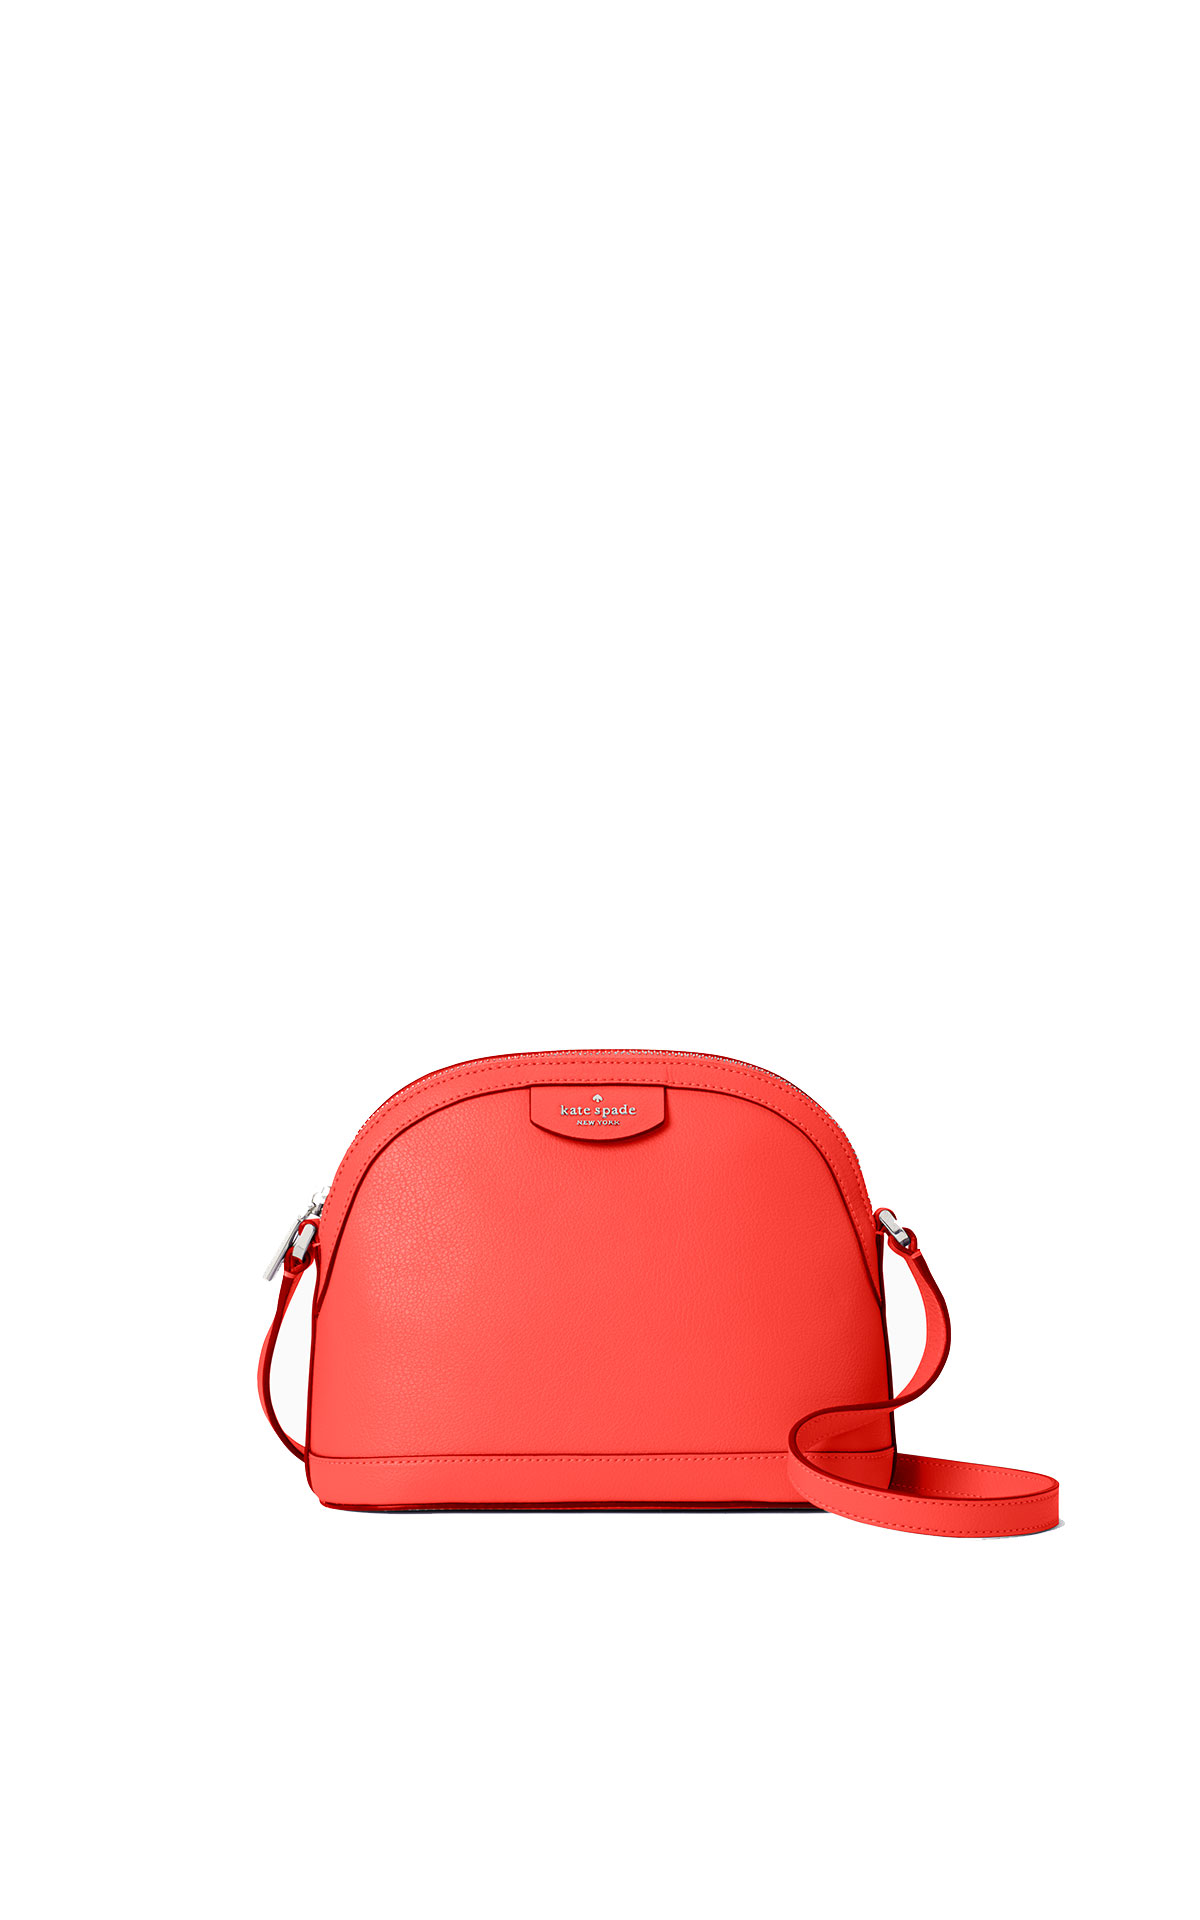 kate spade new york Sylvia x-large dome crossbody stoplight from Bicester Village